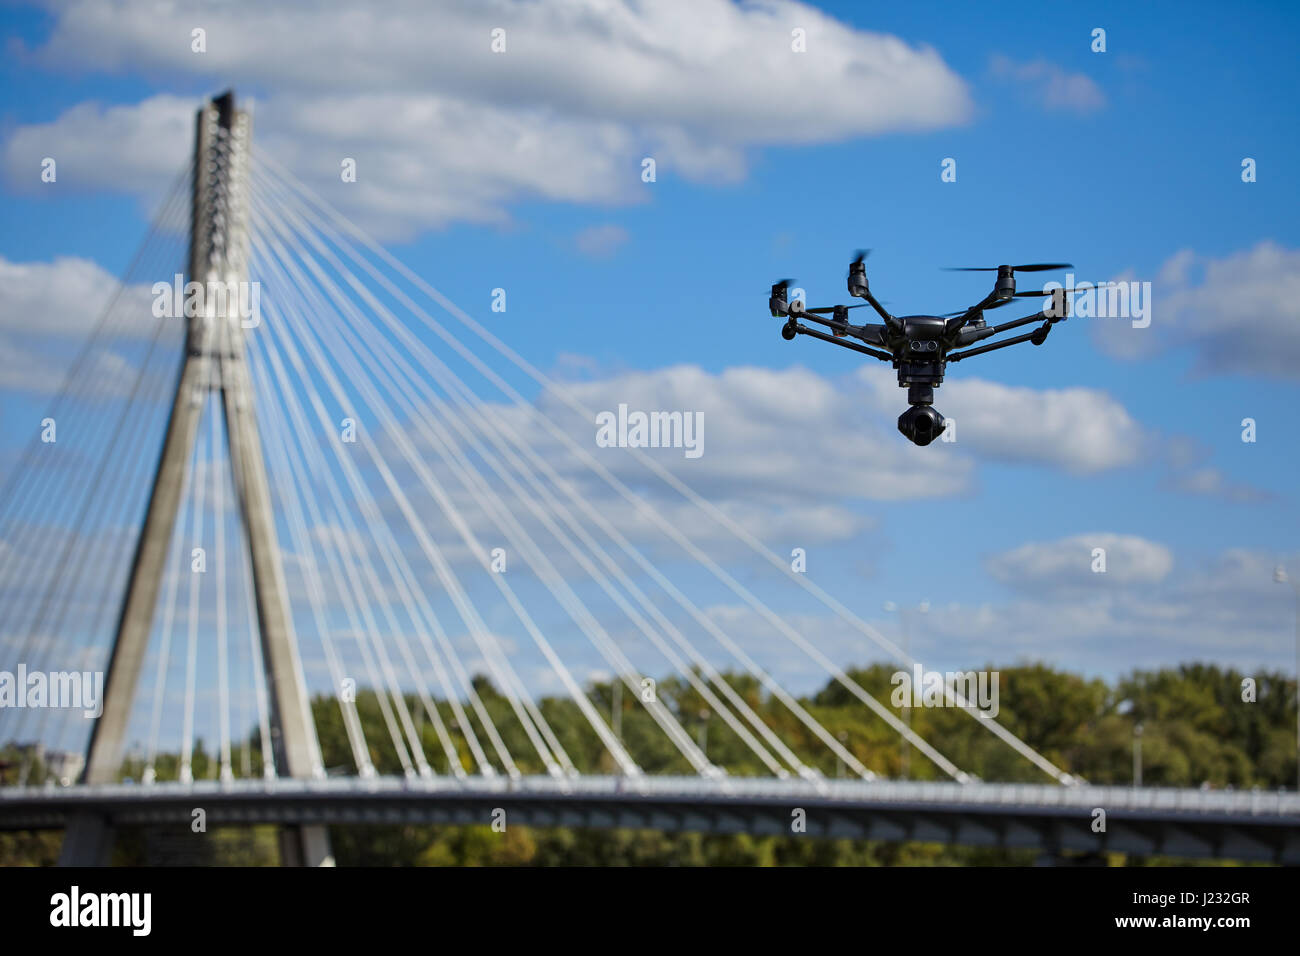 Drone for industrial works flying in sky. - Stock Image